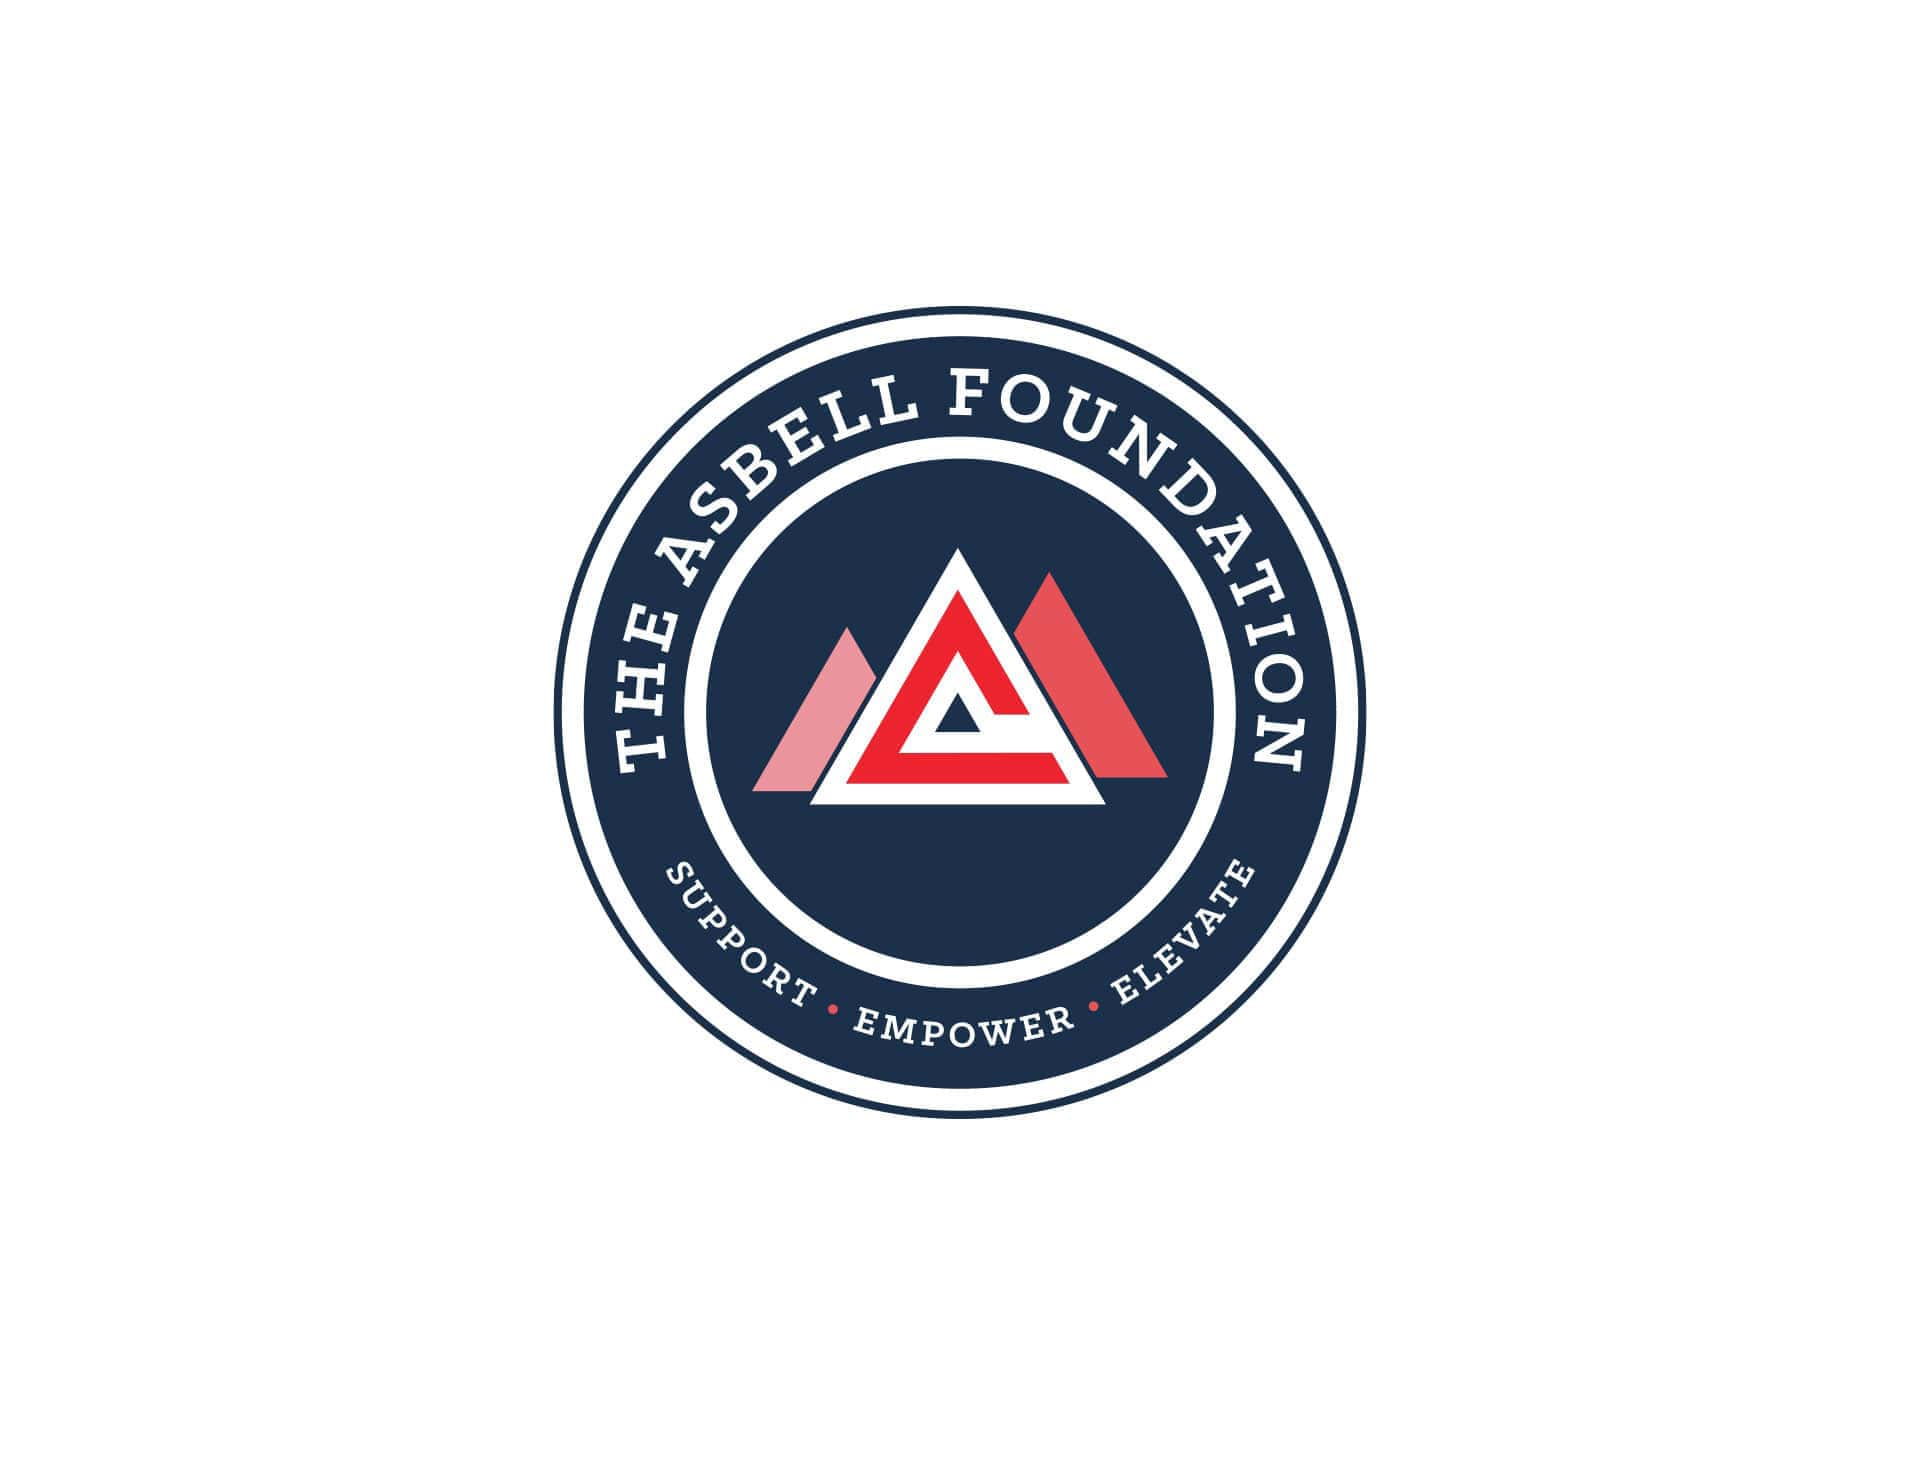 Asbell Foundation Logo